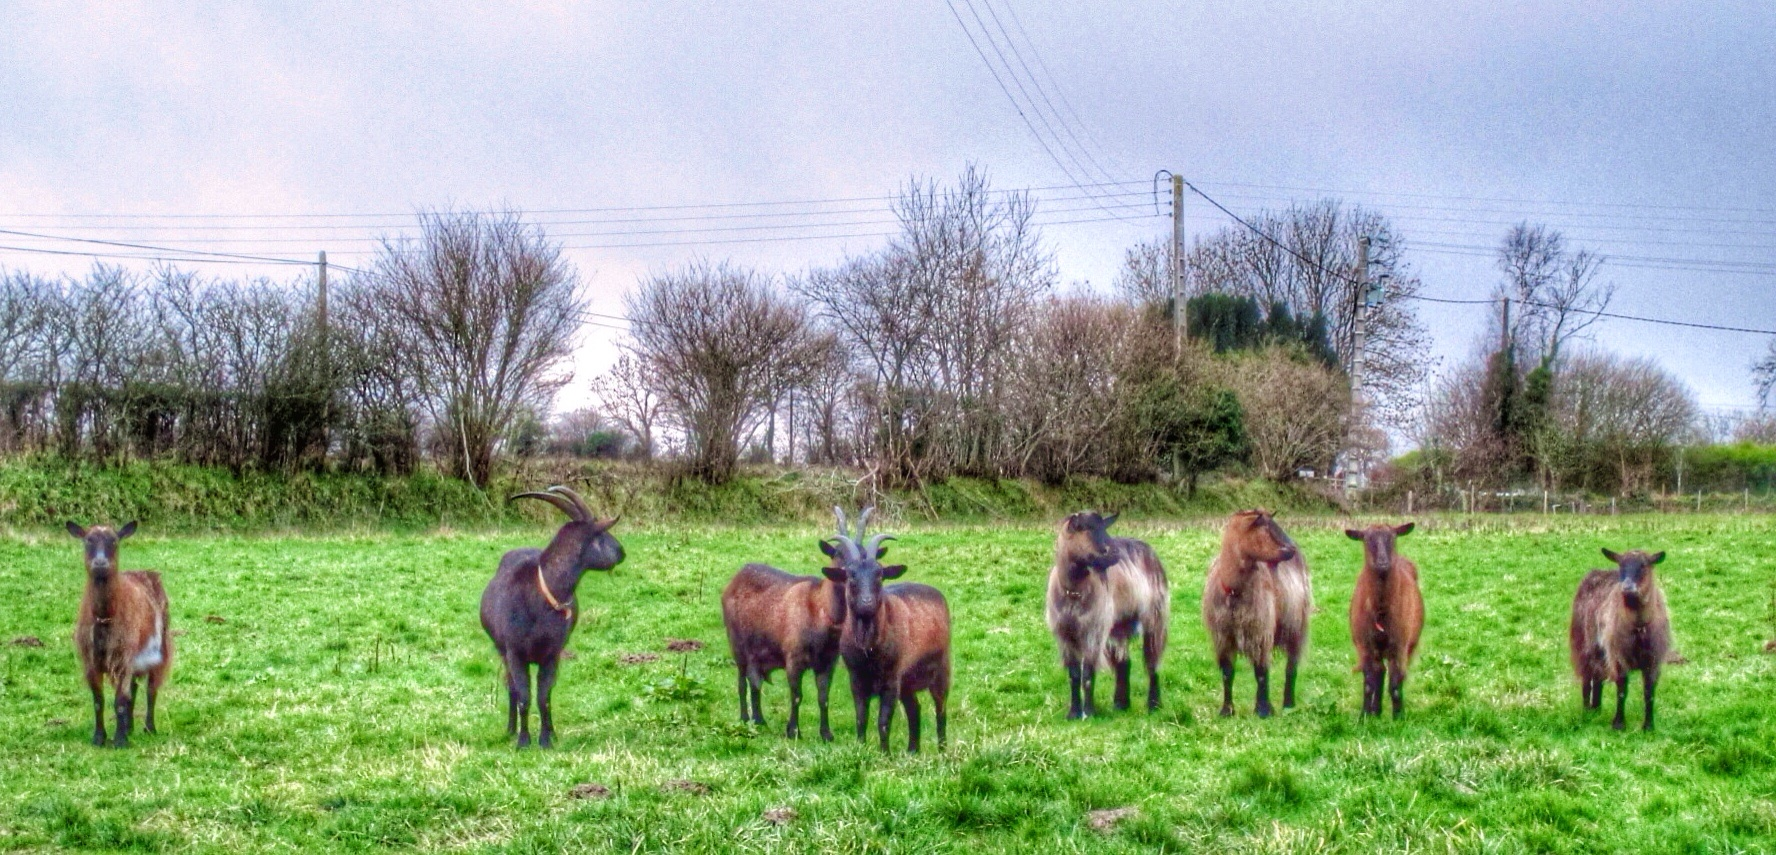 Our new friends (left to right): Dottie, Wilhoughby, Clara, Tatiana, Ronnie, Reggie, Gladys and Peaches